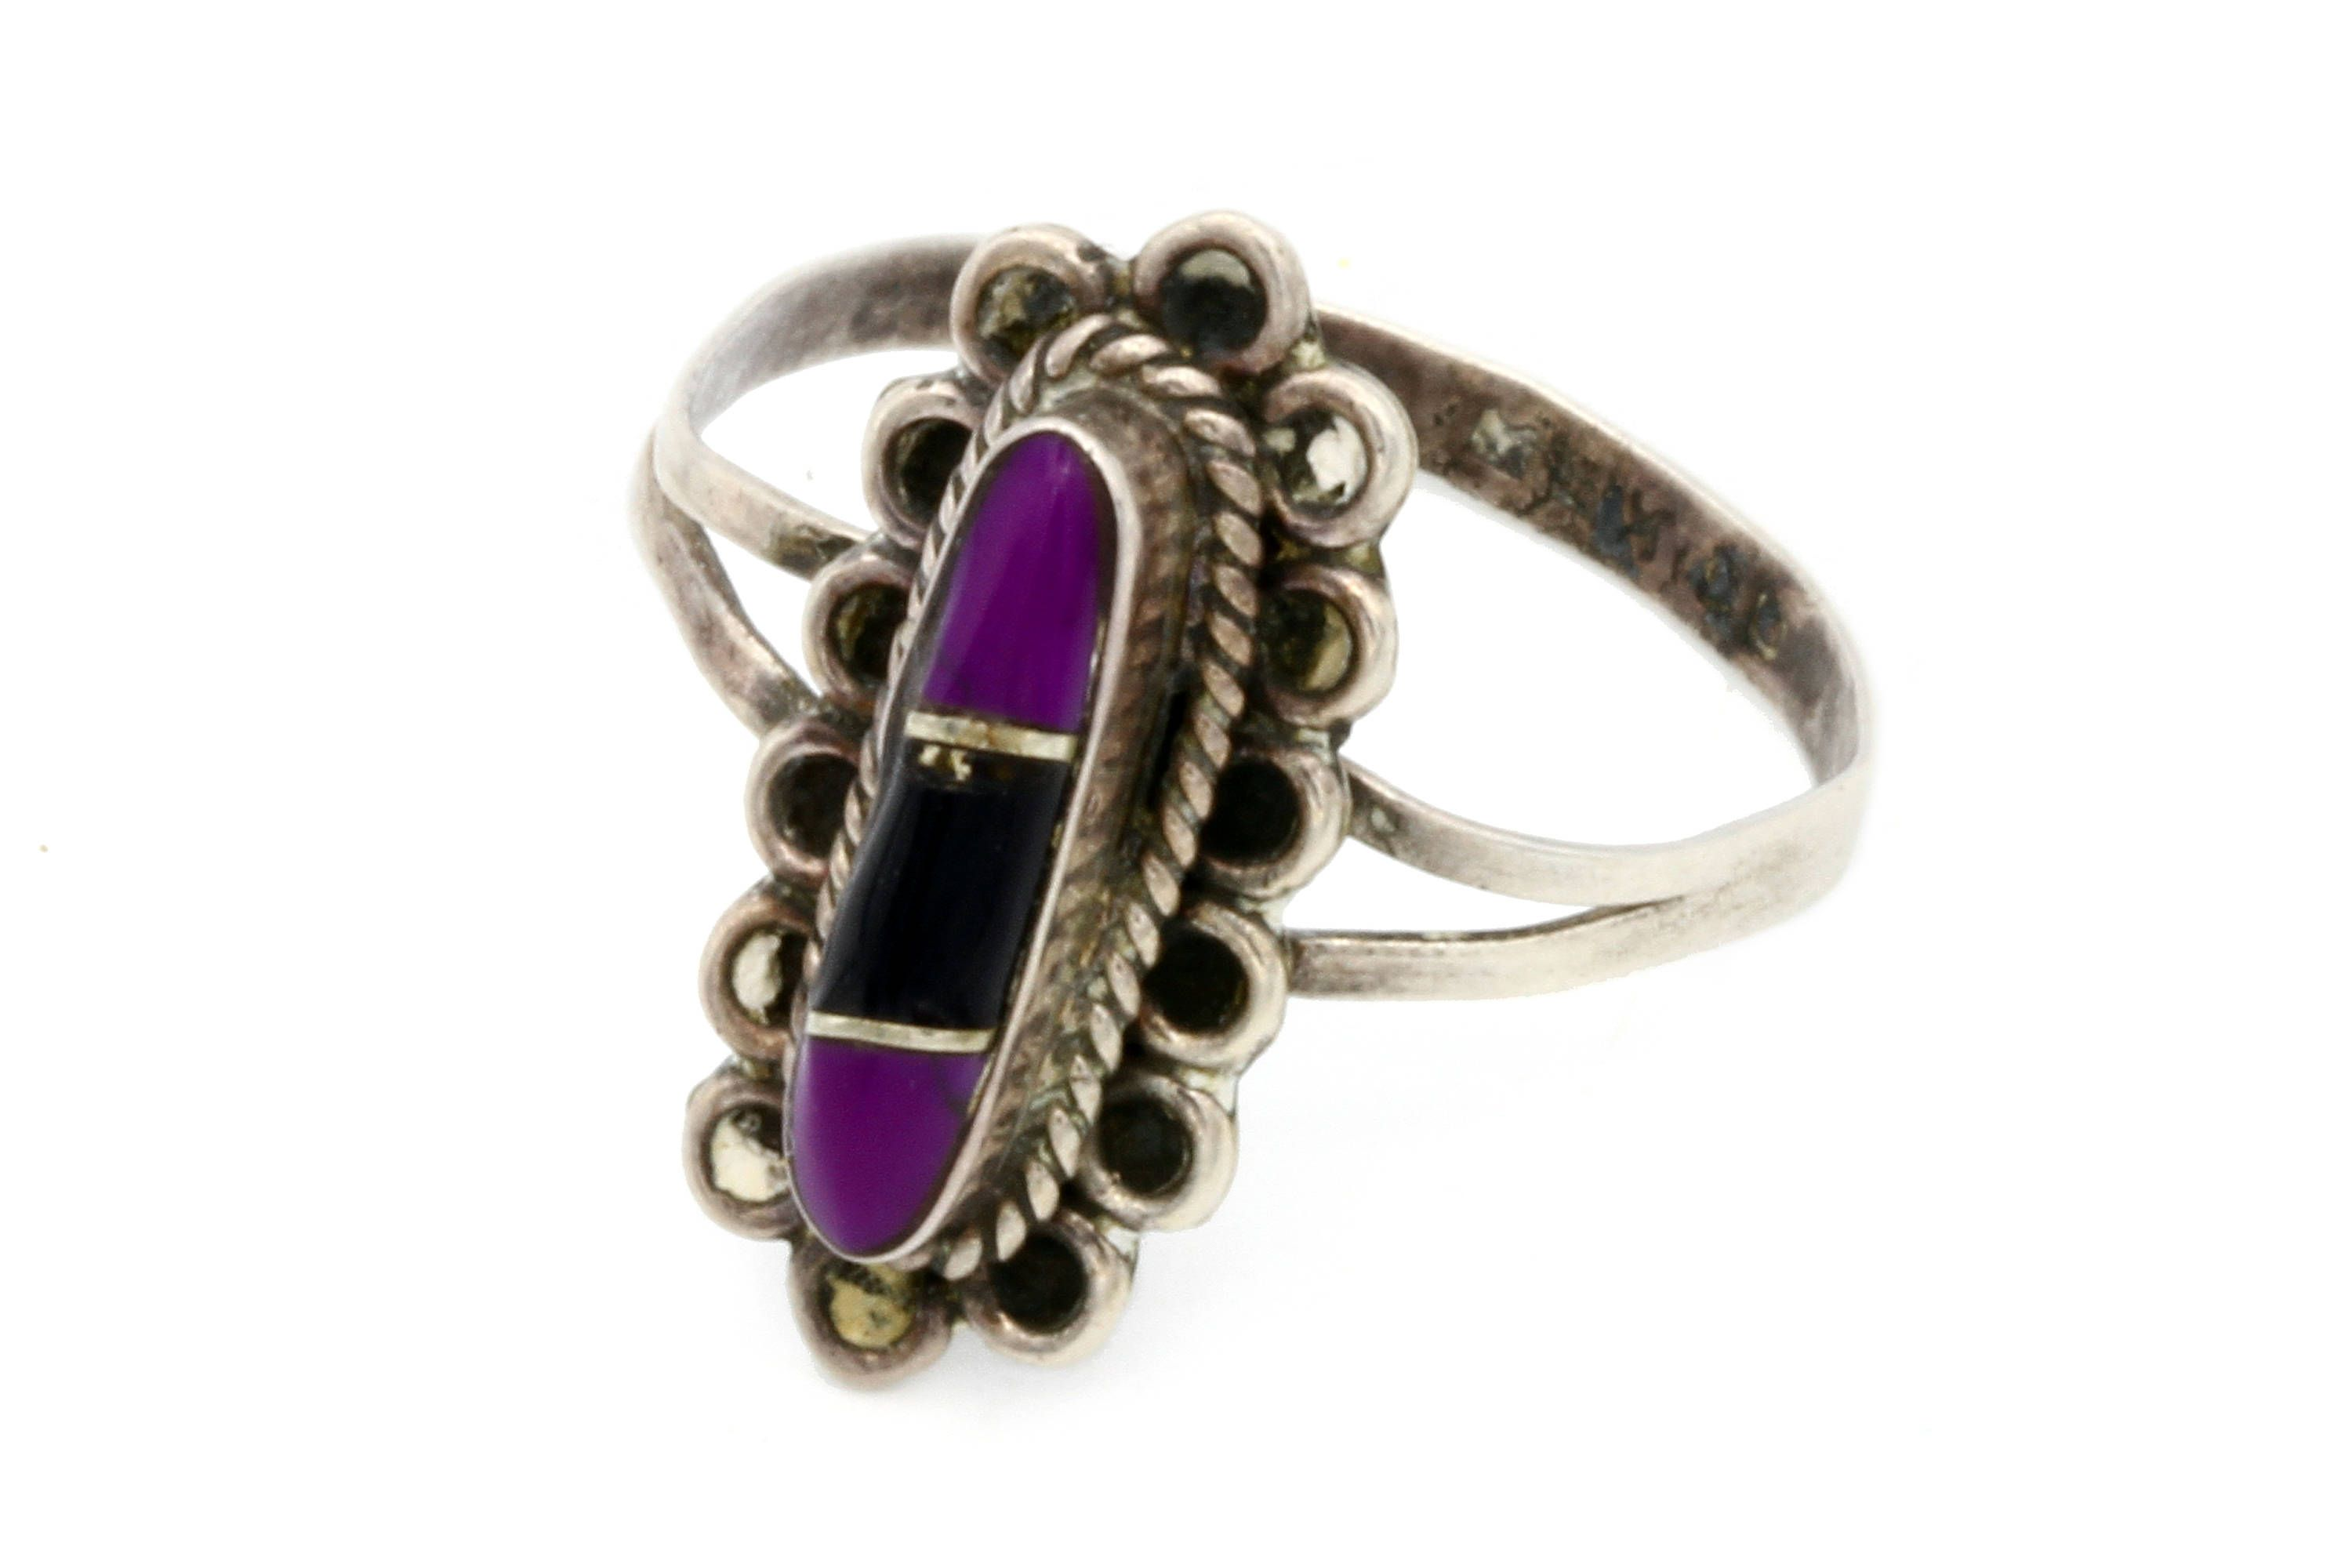 sterling ring  size 7  rare  purple  native  sterling silver ring Native American Jewelry   womens jewelry  estate jewelry,